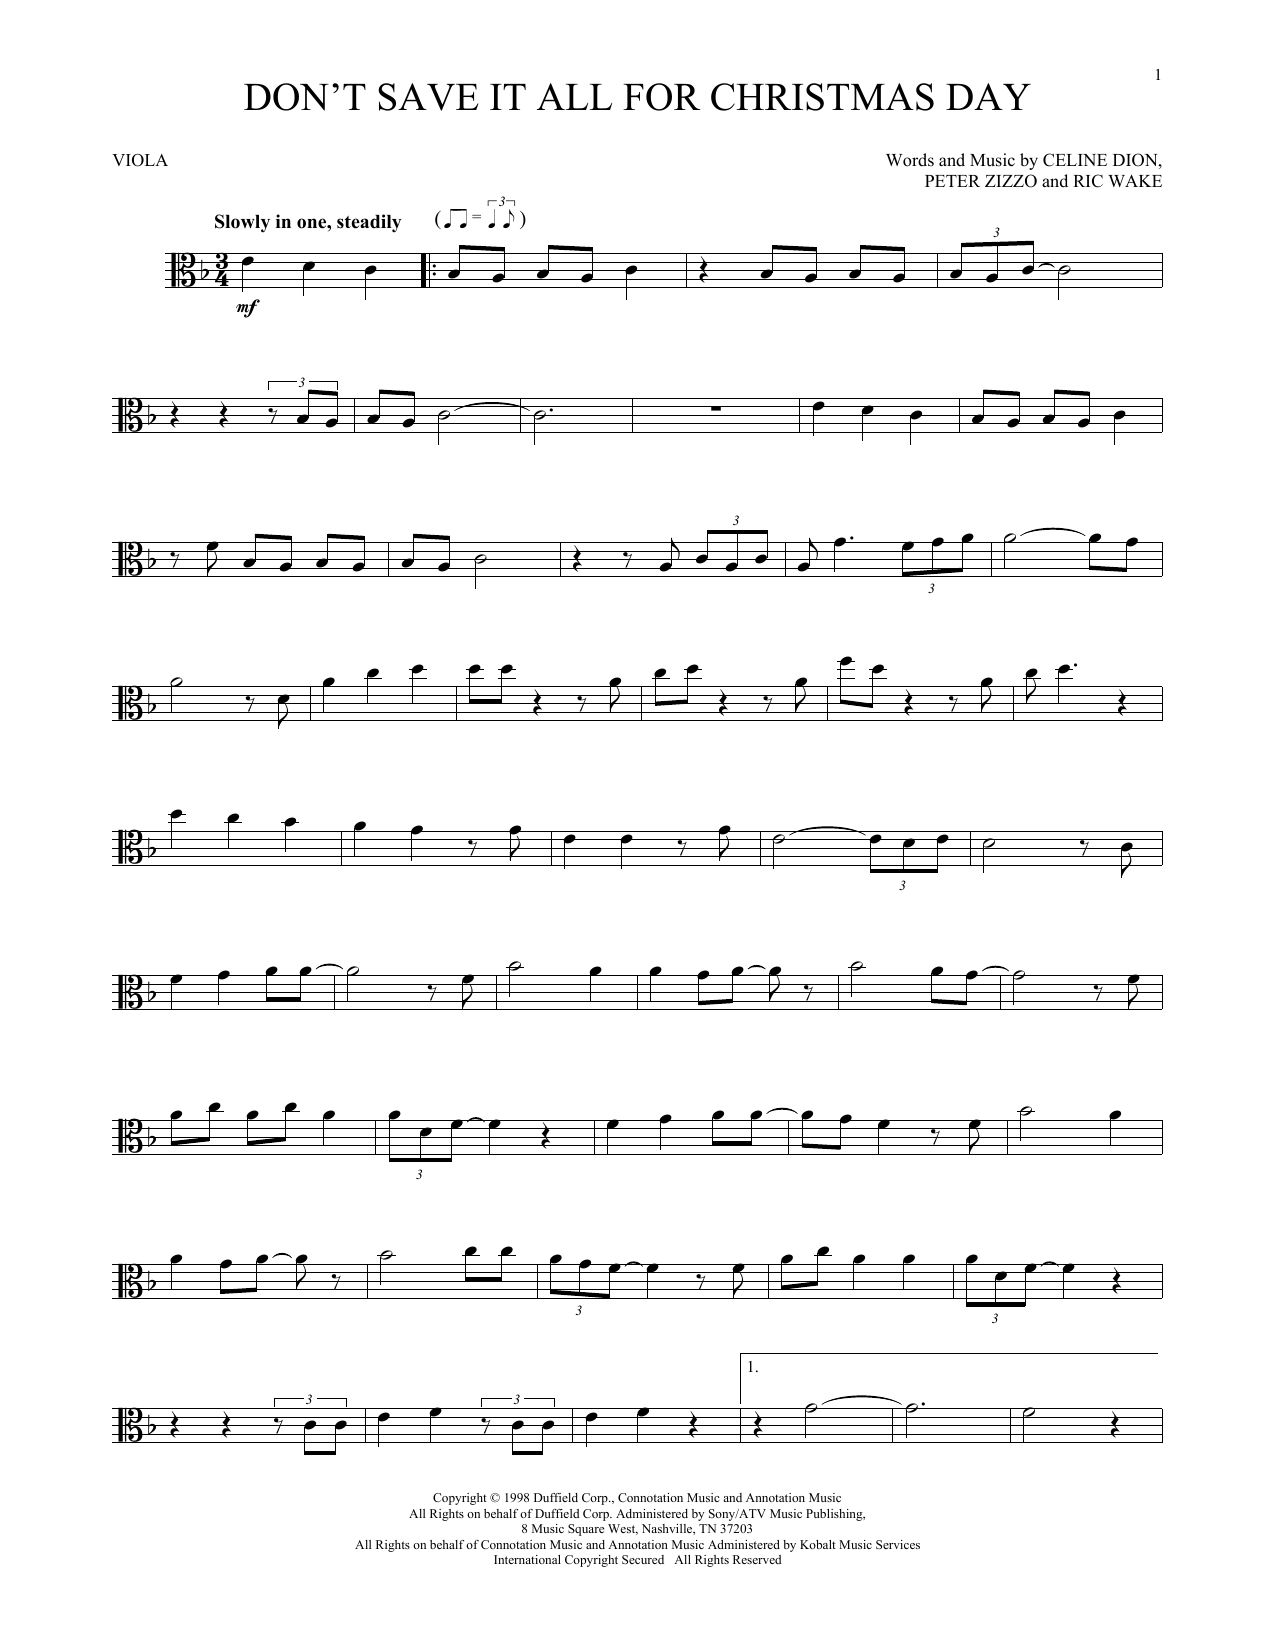 Don't Save It All For Christmas Day (Viola Solo)